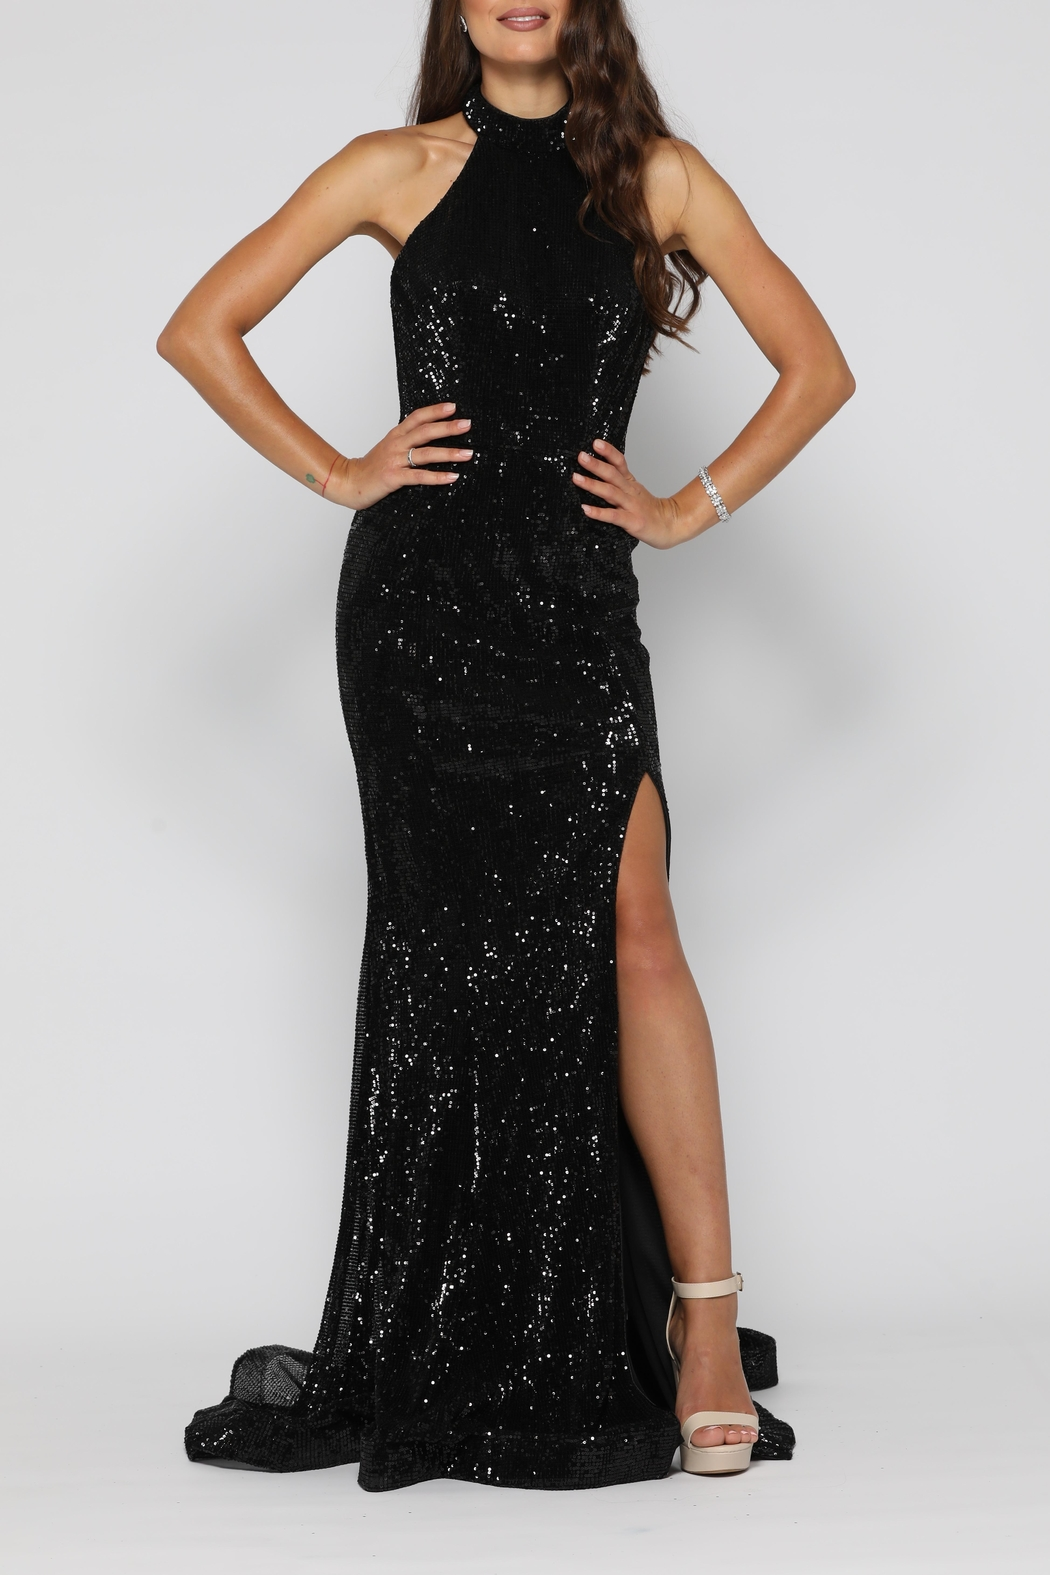 YSS the Label Valerie Gown Black - Main Image